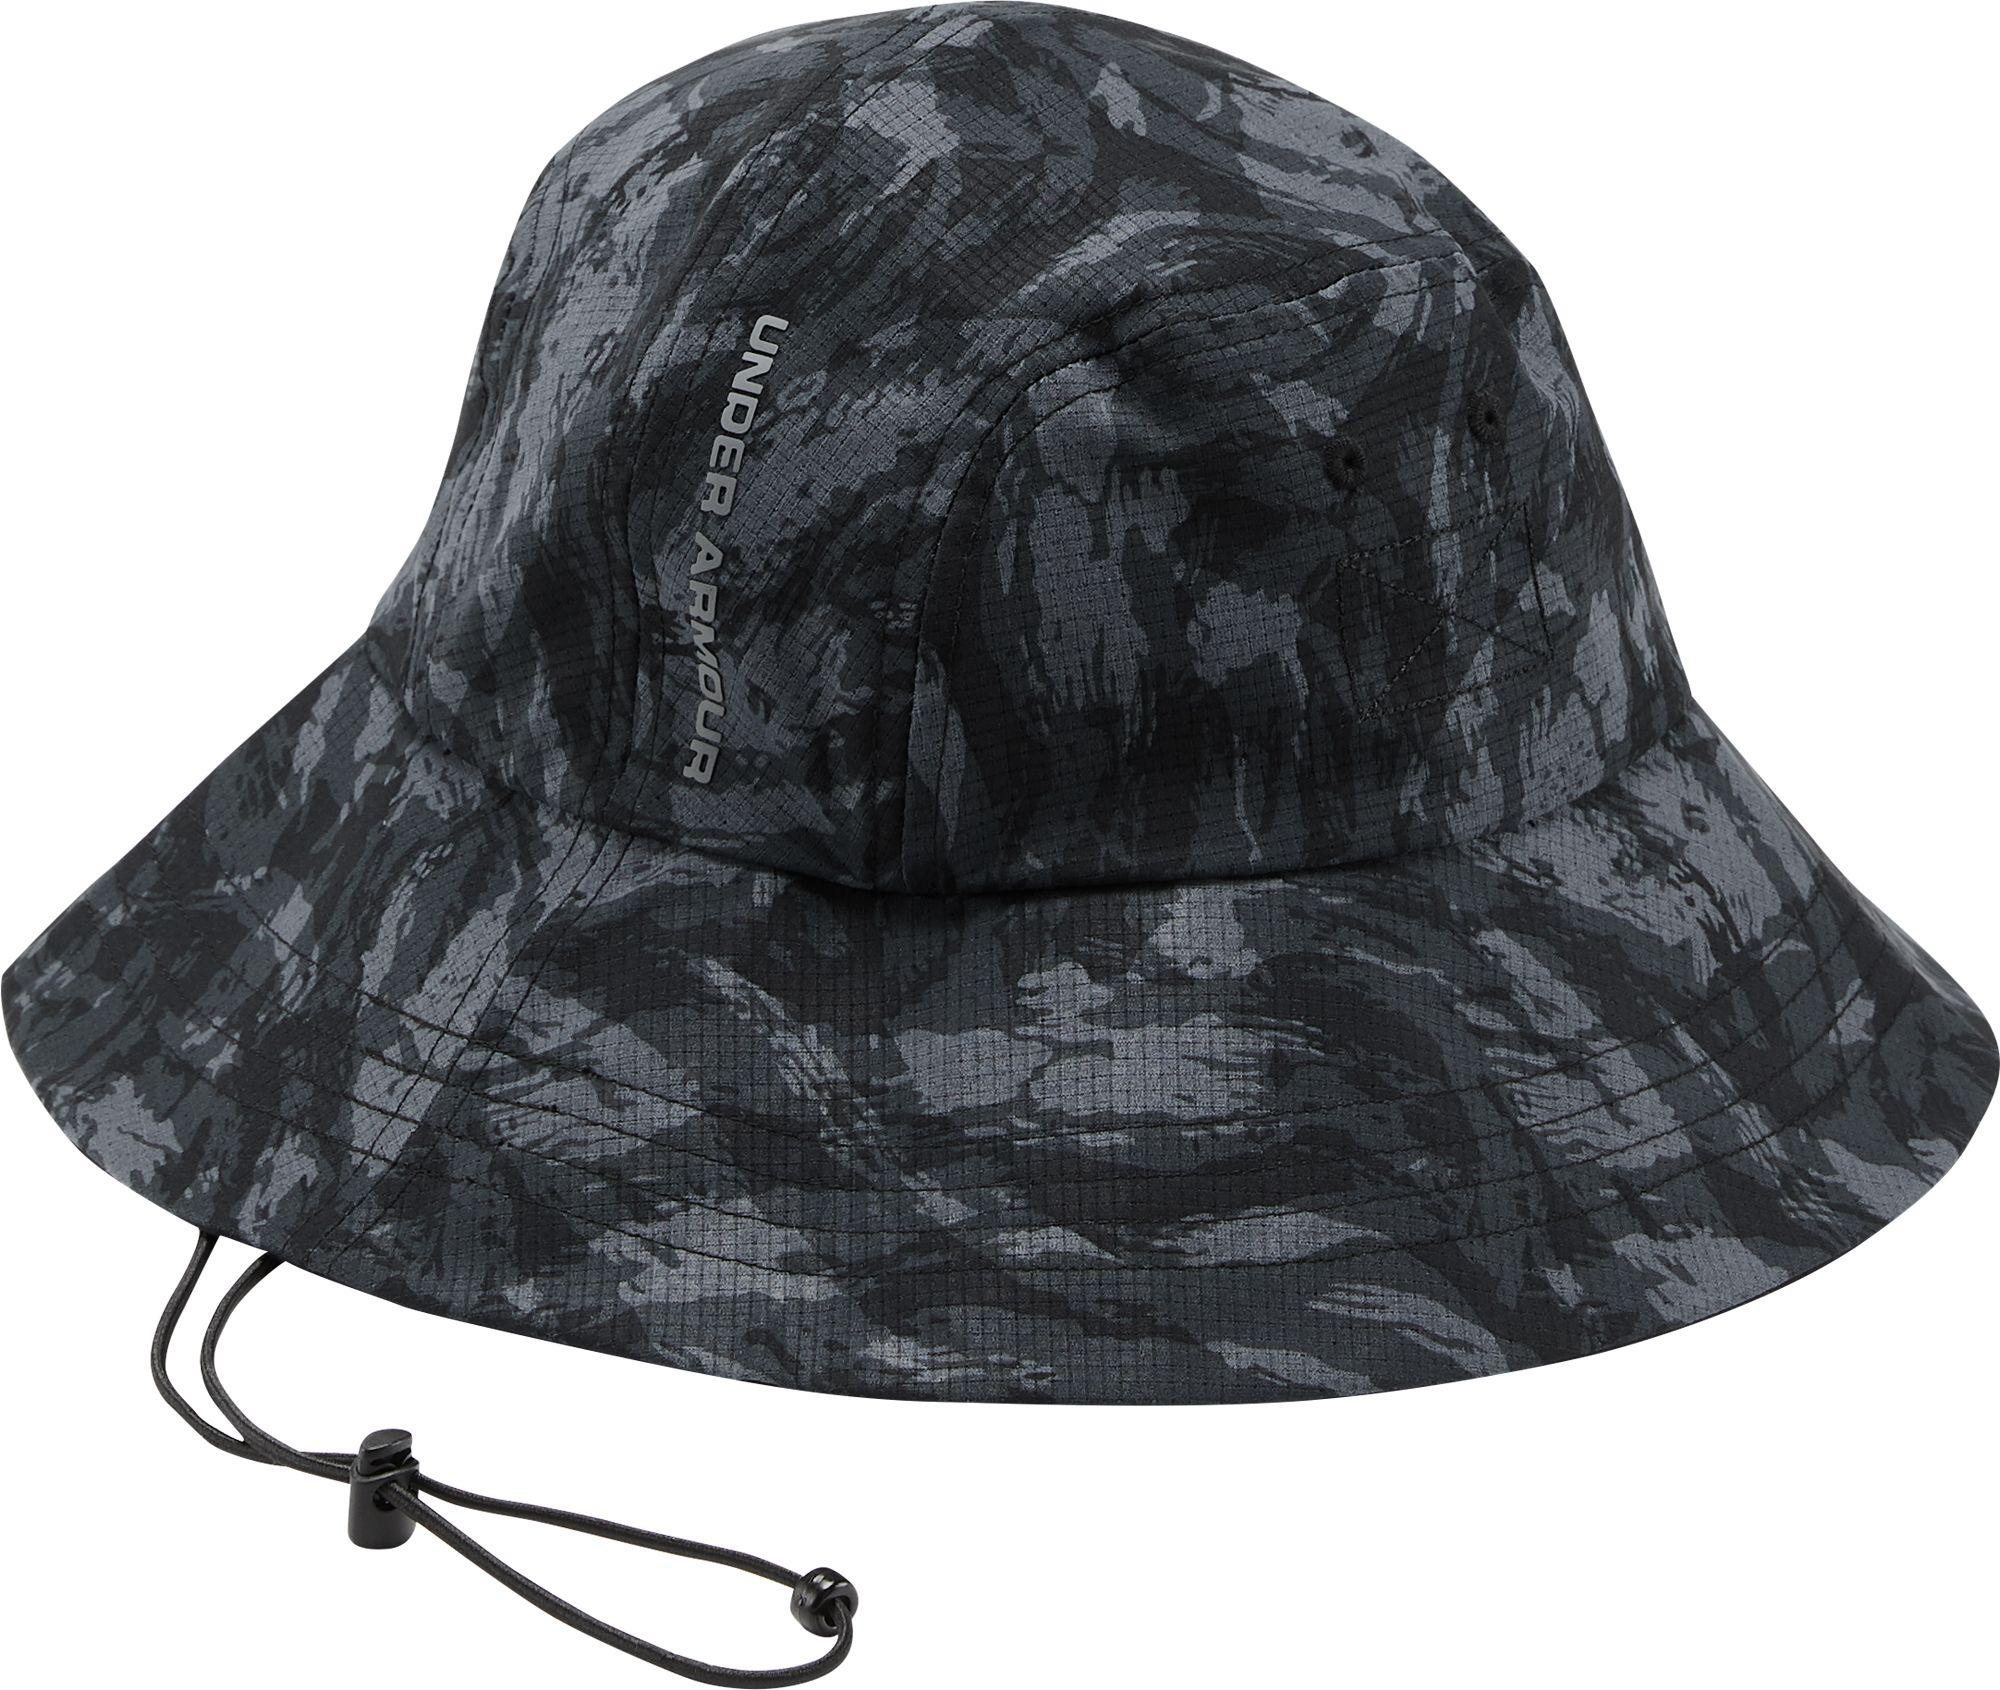 95a61c9b8 Under Armour Black Armourvent Warrior 2.0 Bucket Hat for men